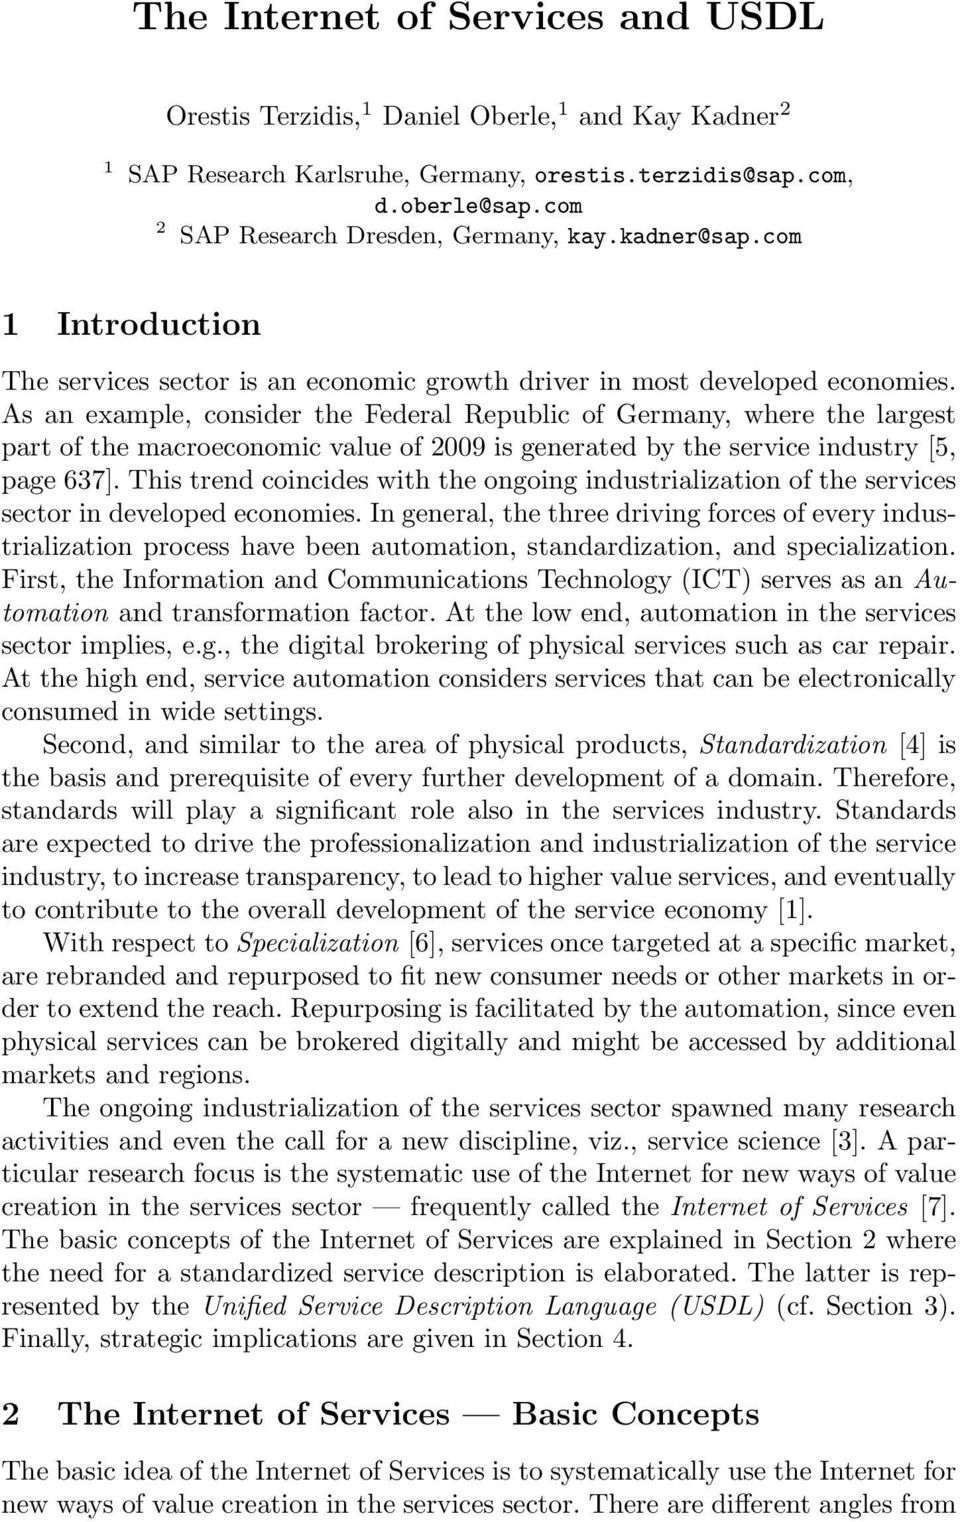 As an example, consider the Federal Republic of Germany, where the largest part of the macroeconomic value of 2009 is generated by the service industry [5, page 637].